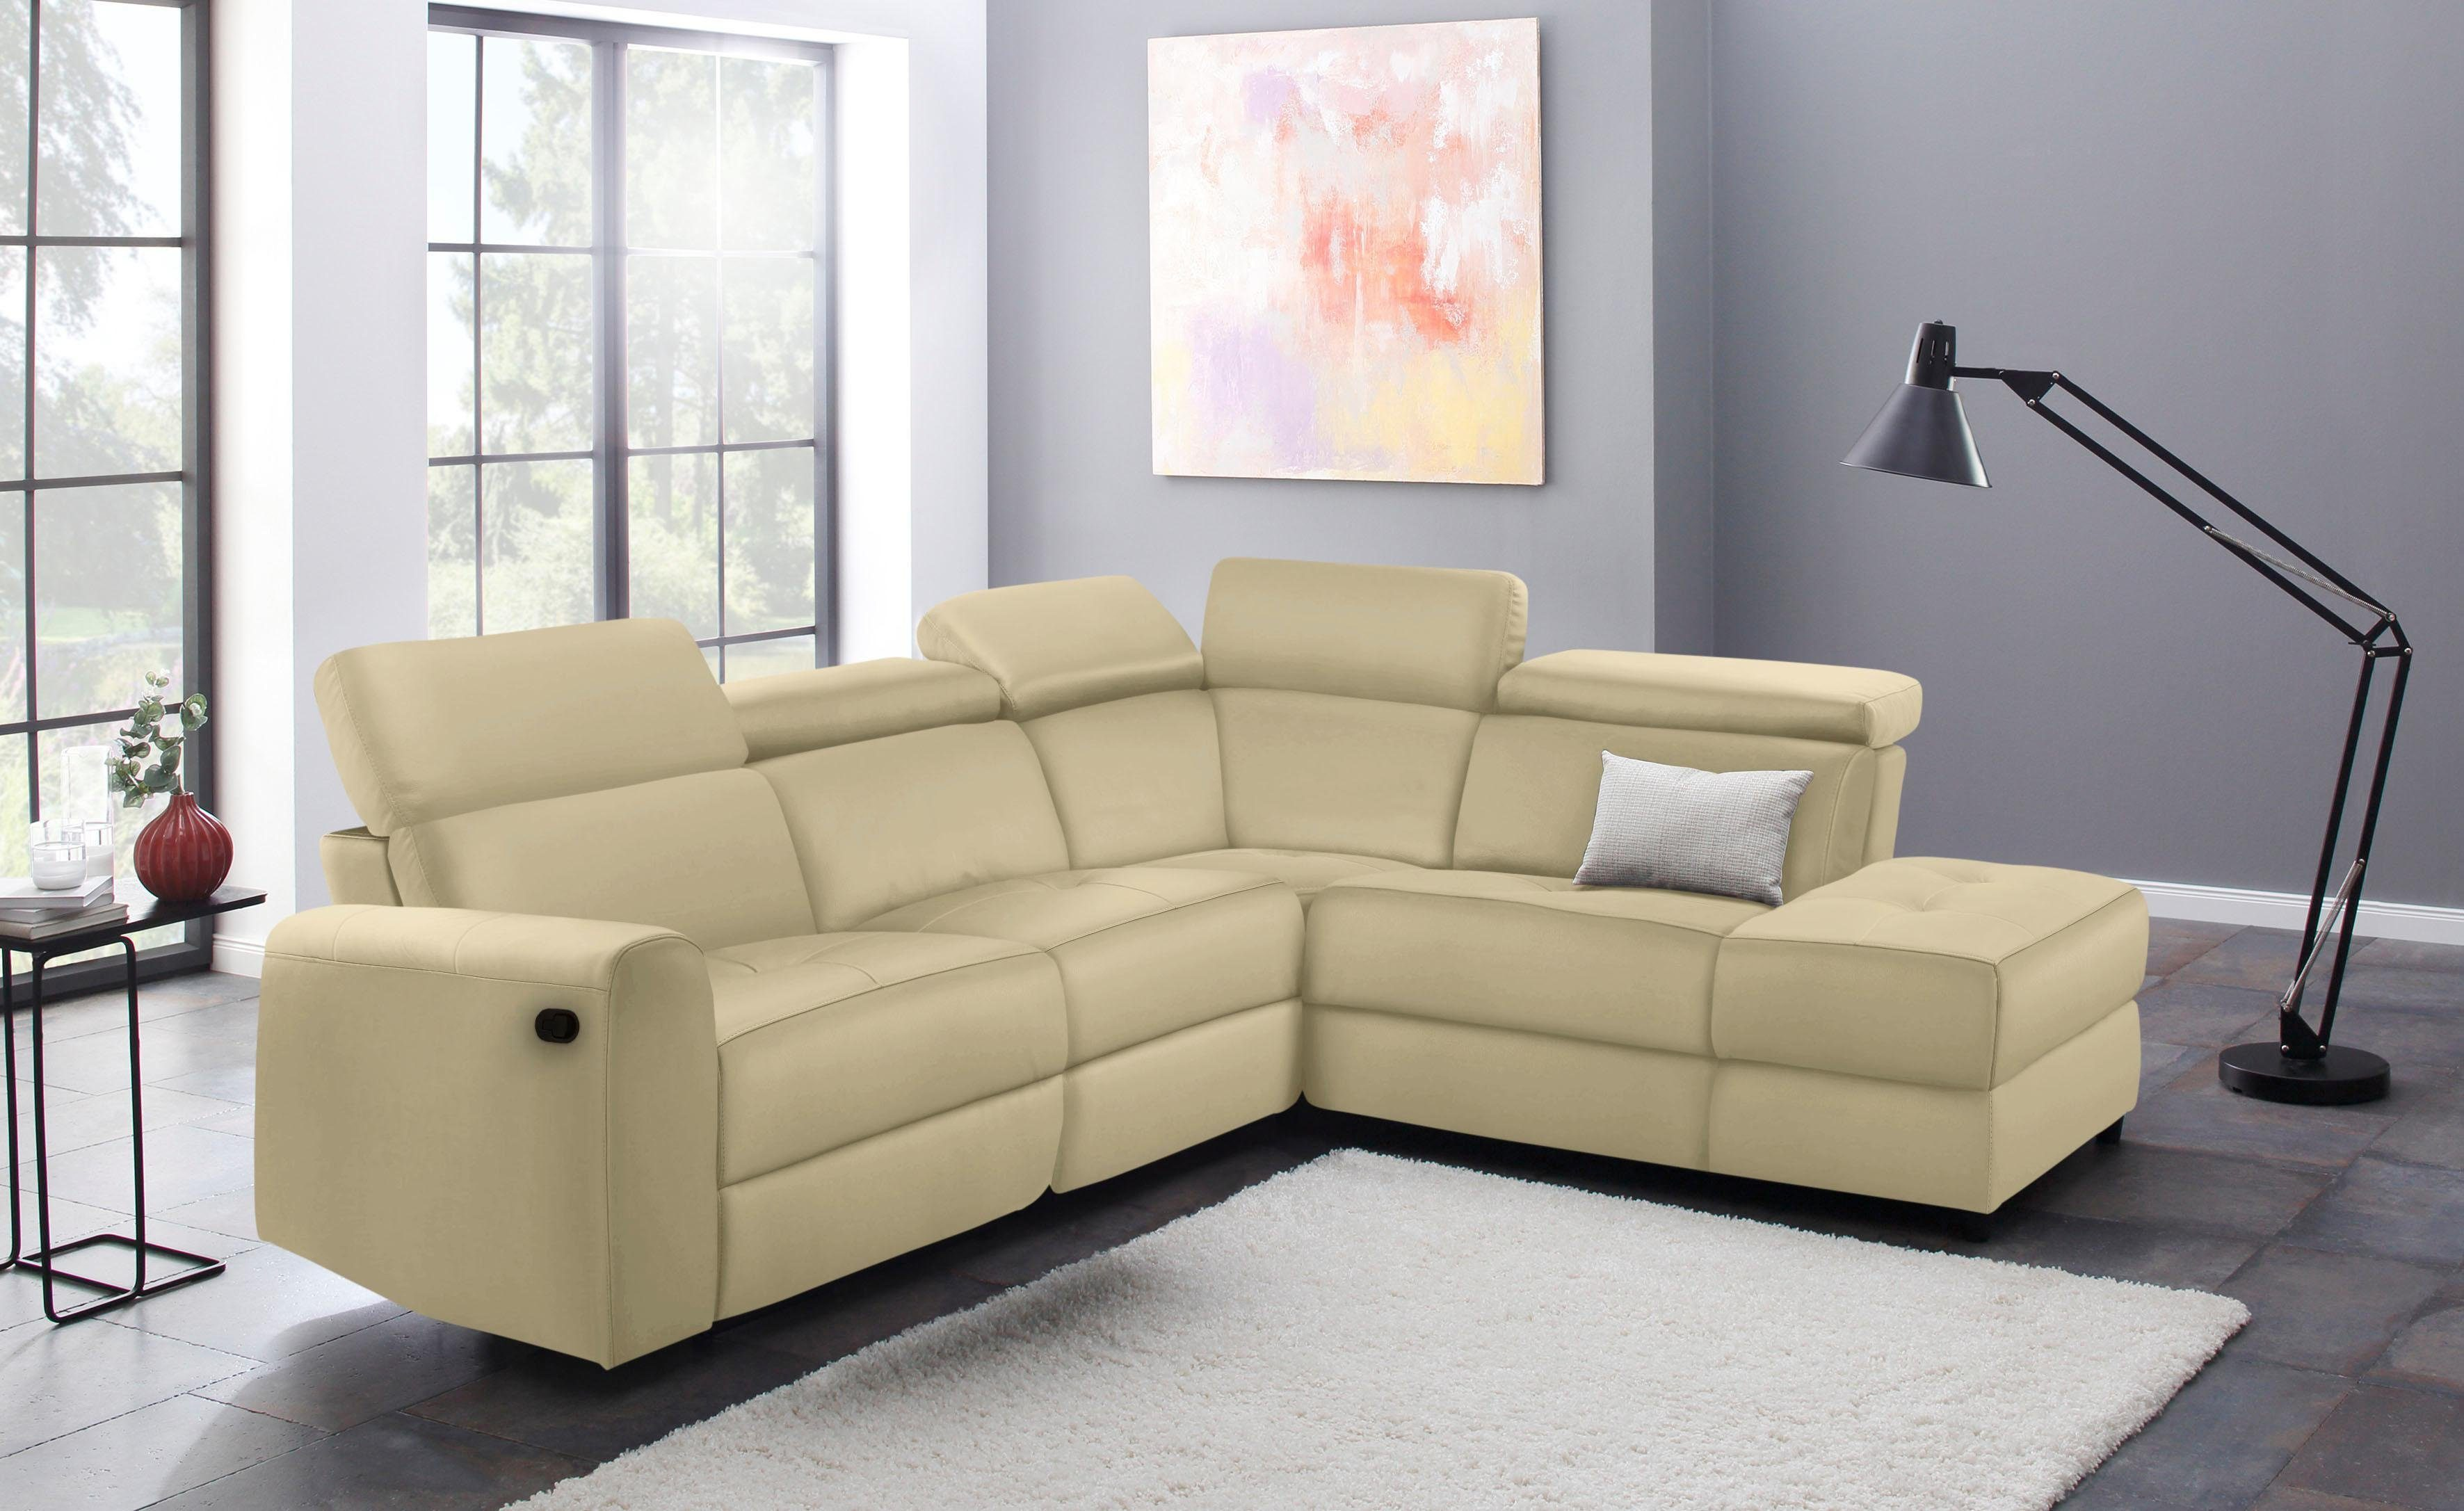 Home affaire Ecksofa Sentrano | Wohnzimmer > Sofas & Couches > Ecksofas & Eckcouches | home affaire